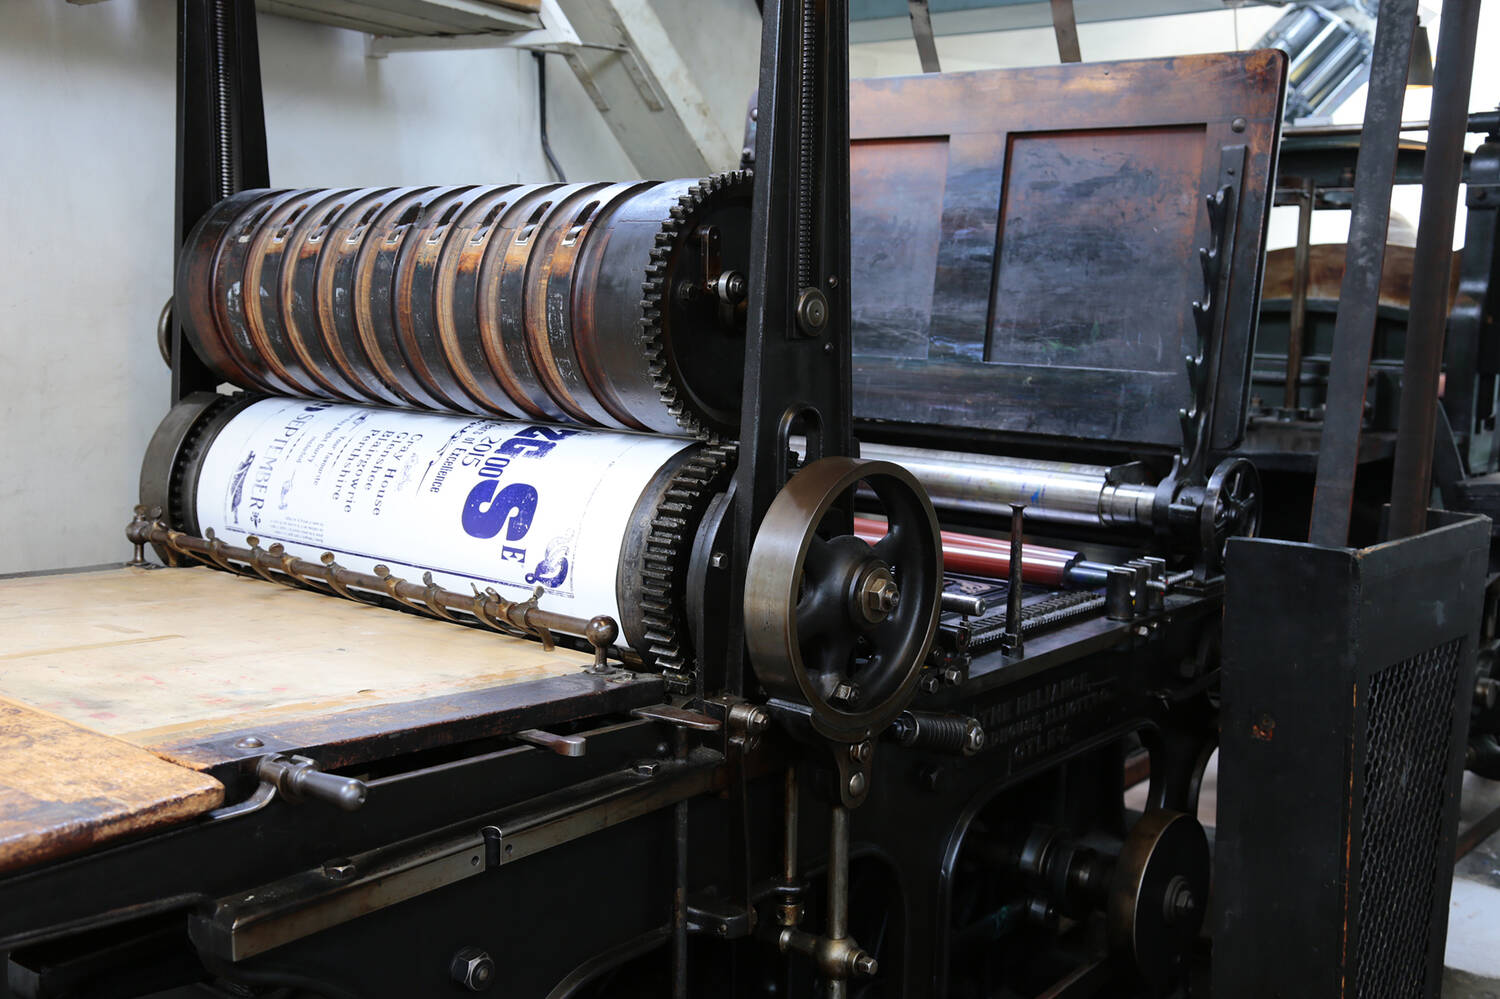 A close-up view of the Wharfedale reliance printing press, showing a large poster rolled around a wheel.